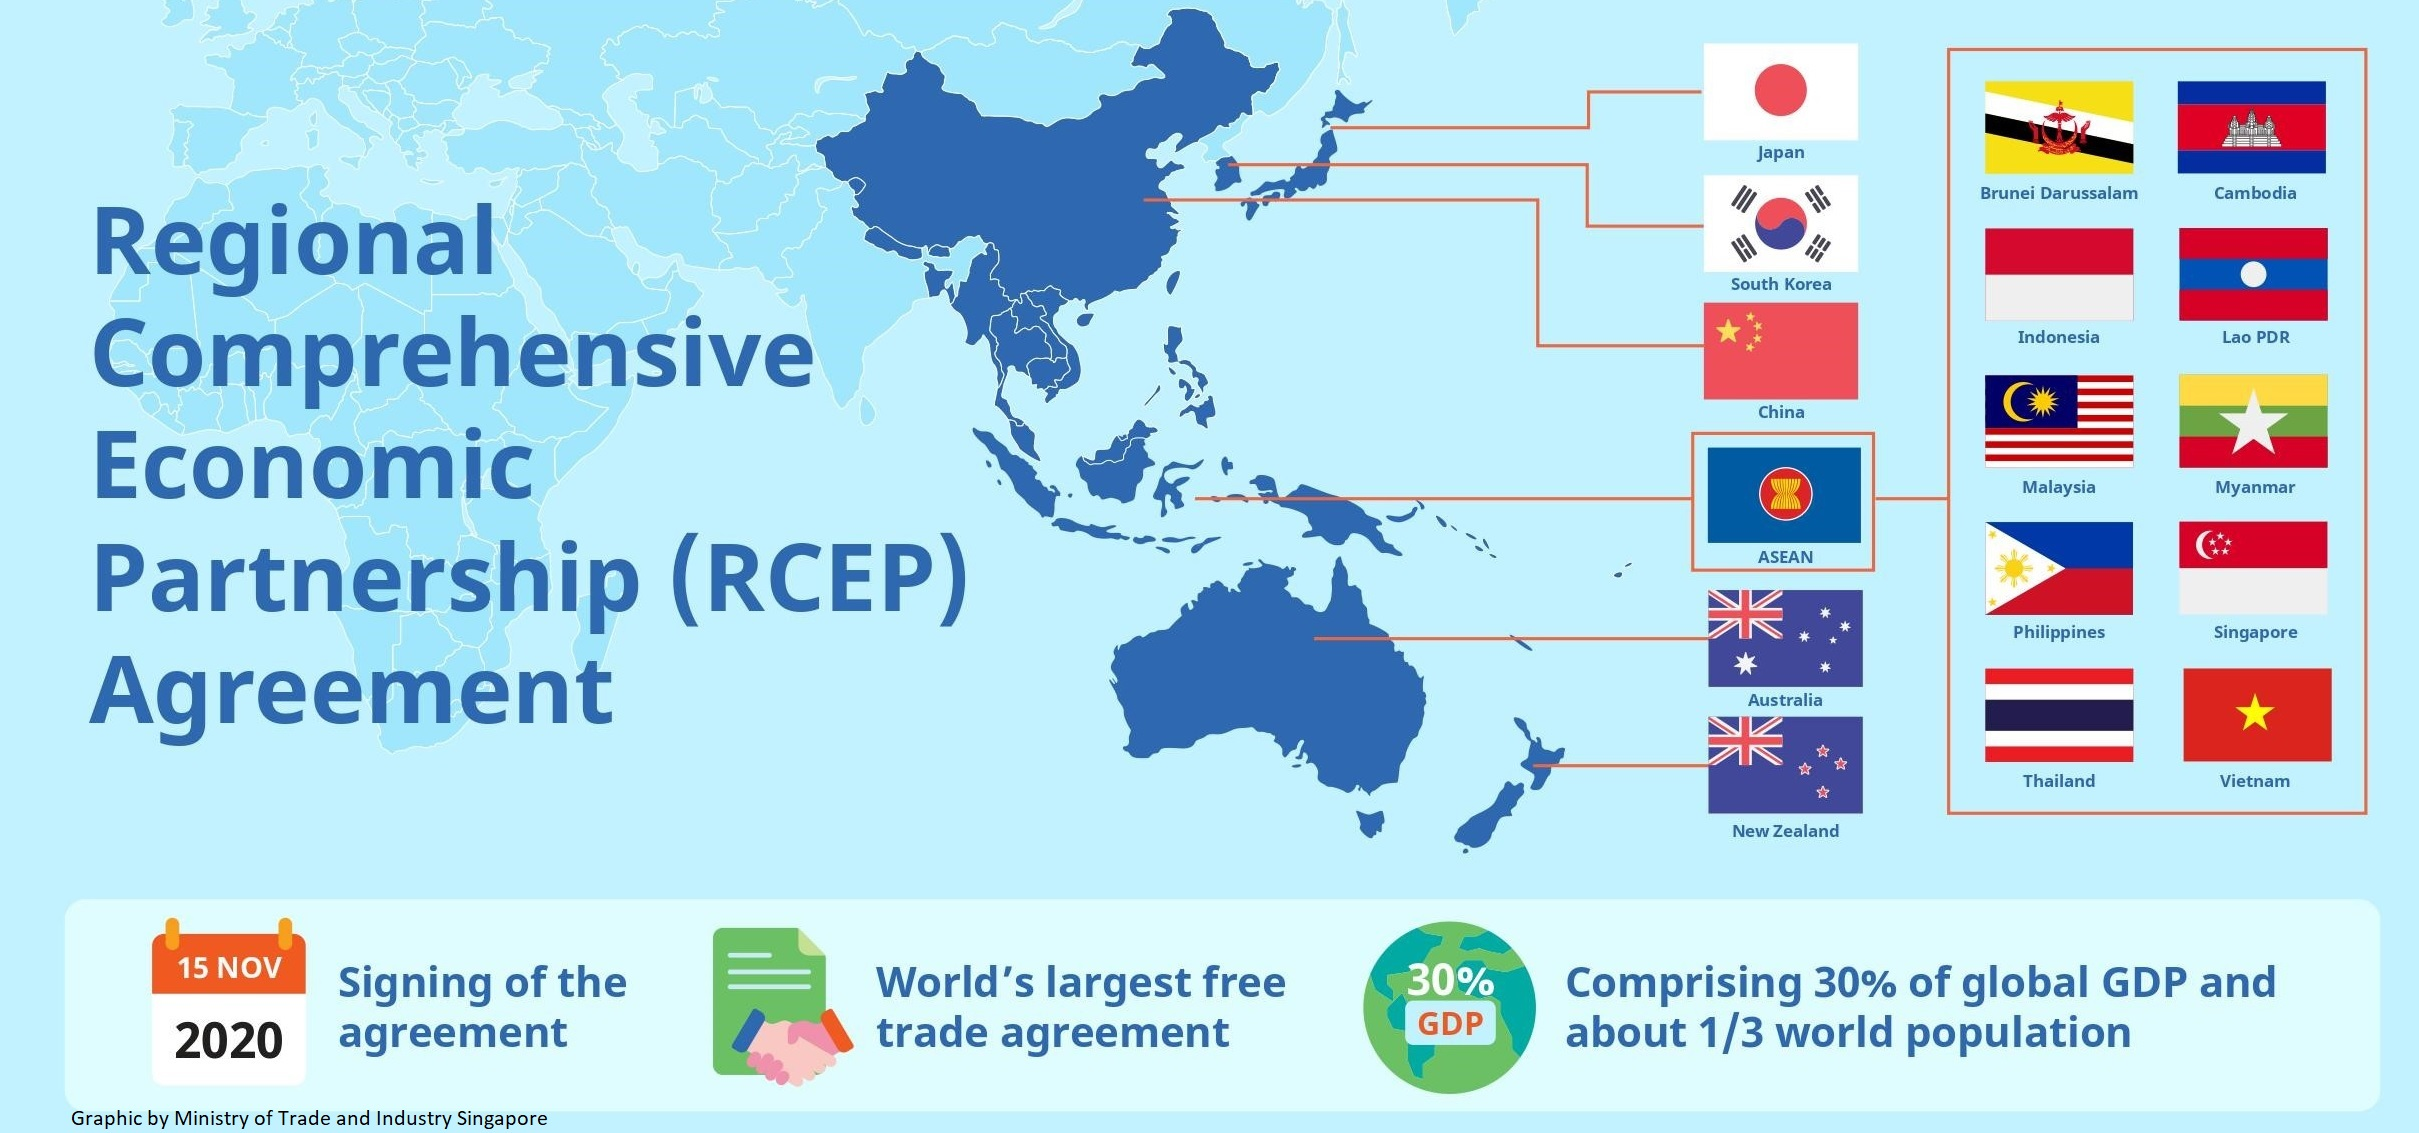 Regional Comprehensive Economic Partnership (RCEP)